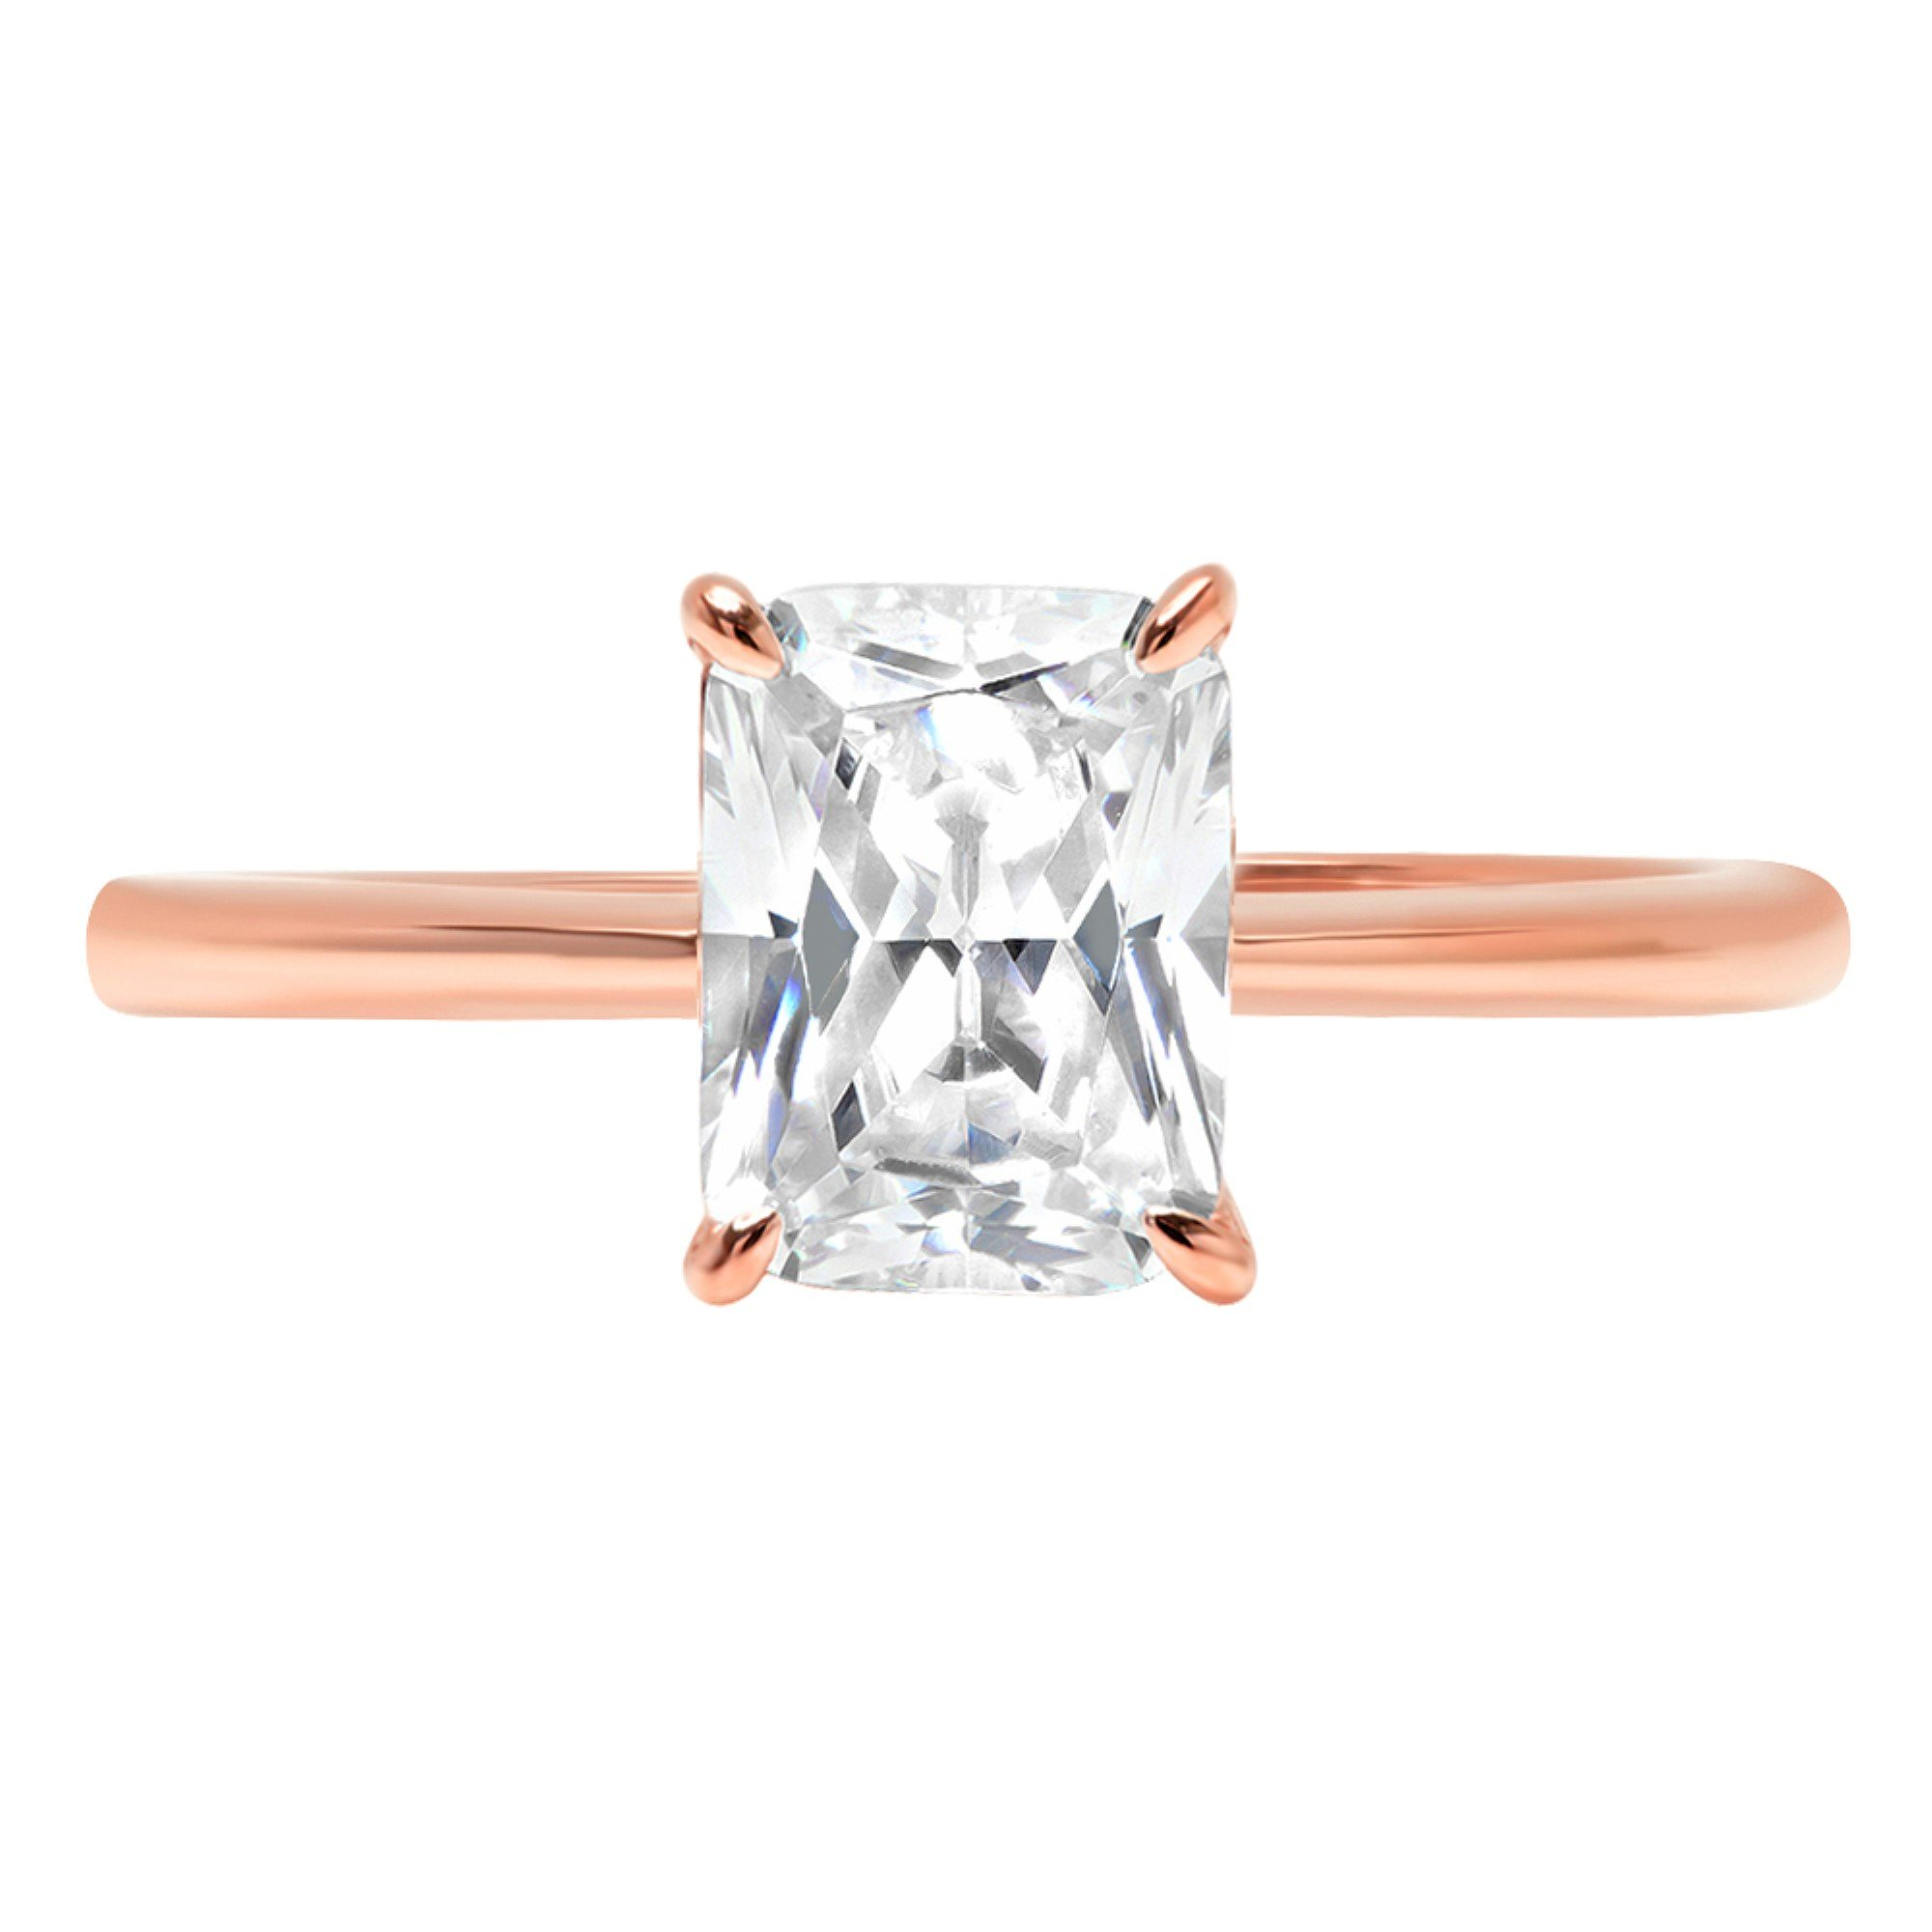 2.5ct Brilliant Radiant Cut Solitaire Highest Quality Moissanite Ideal VVS1 D 4-Prong Engagement Wedding Bridal Promise Anniversary Ring in Solid Real 14k Rose Gold for Women